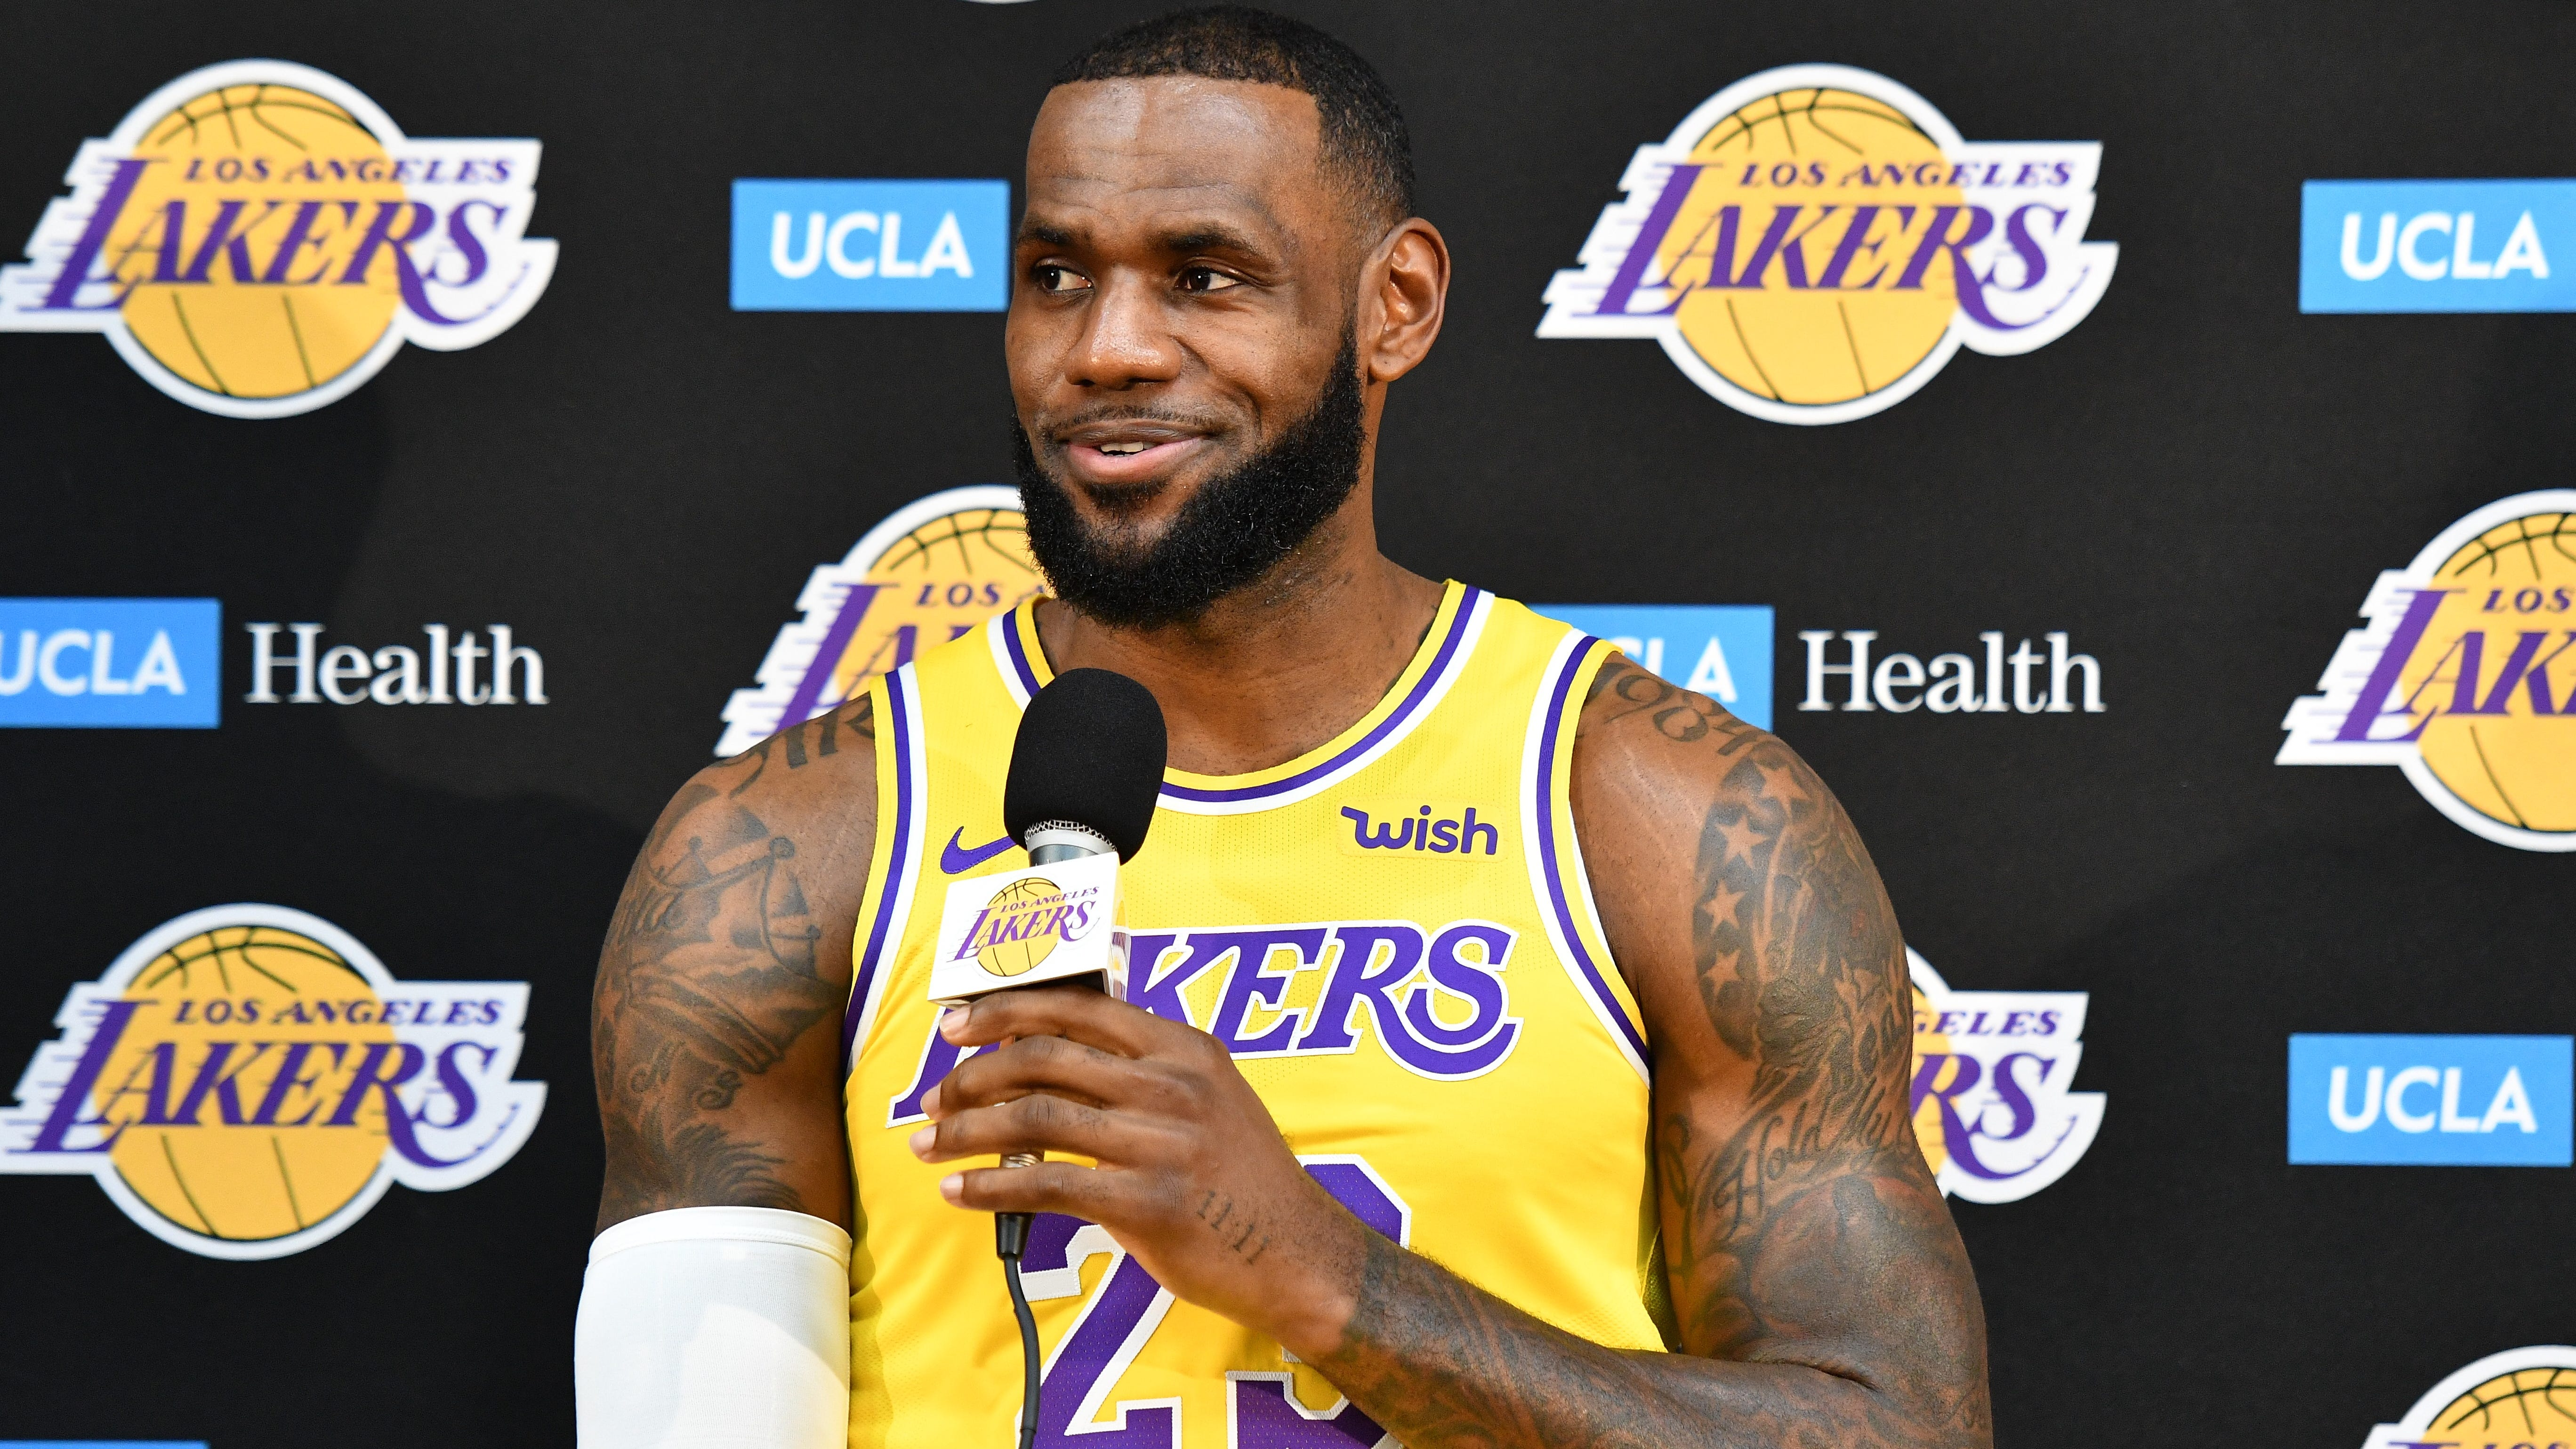 Ae322311-3074-4a8a-8e41-a8bd458f289b-xxx_nba__los_angeles_lakers_media_day003